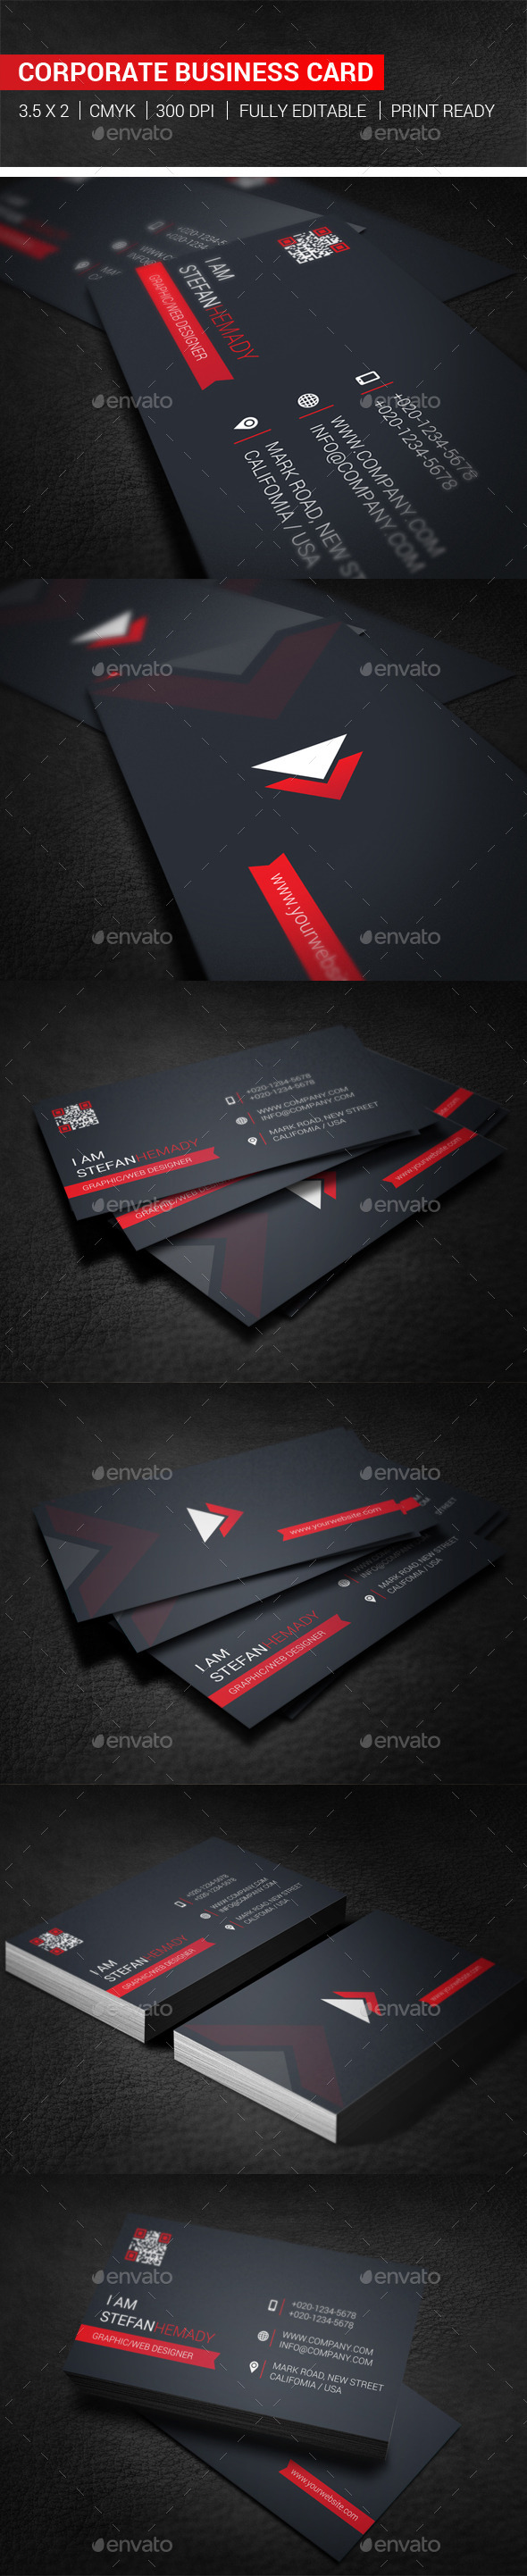 GraphicRiver Corporate Business Card 10126349